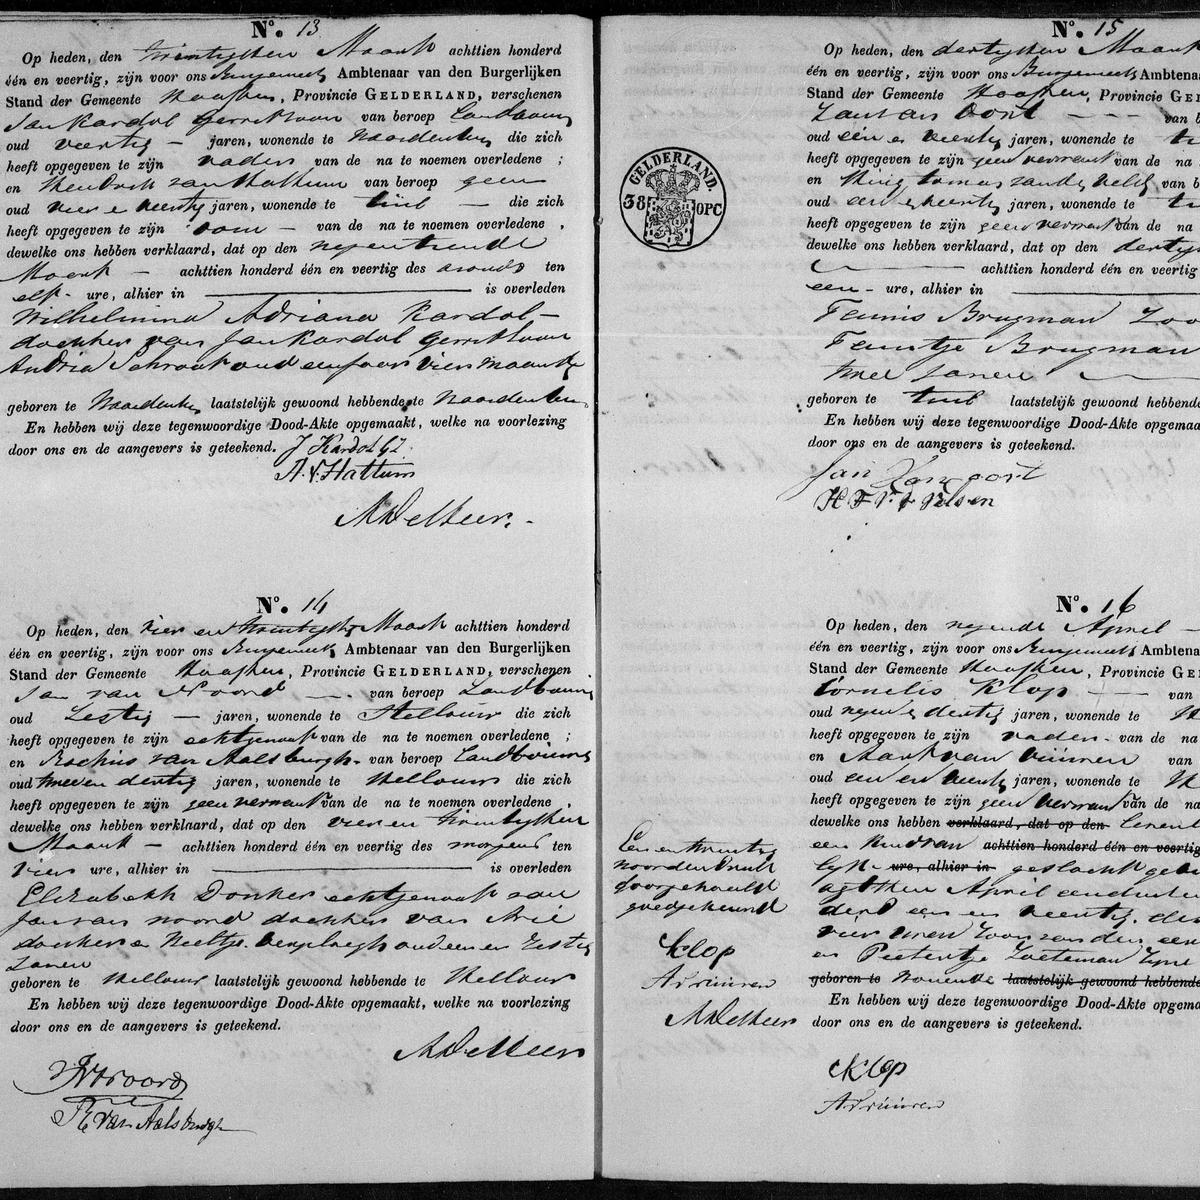 Civil registry of deaths, Haaften, 1841, records 13-16